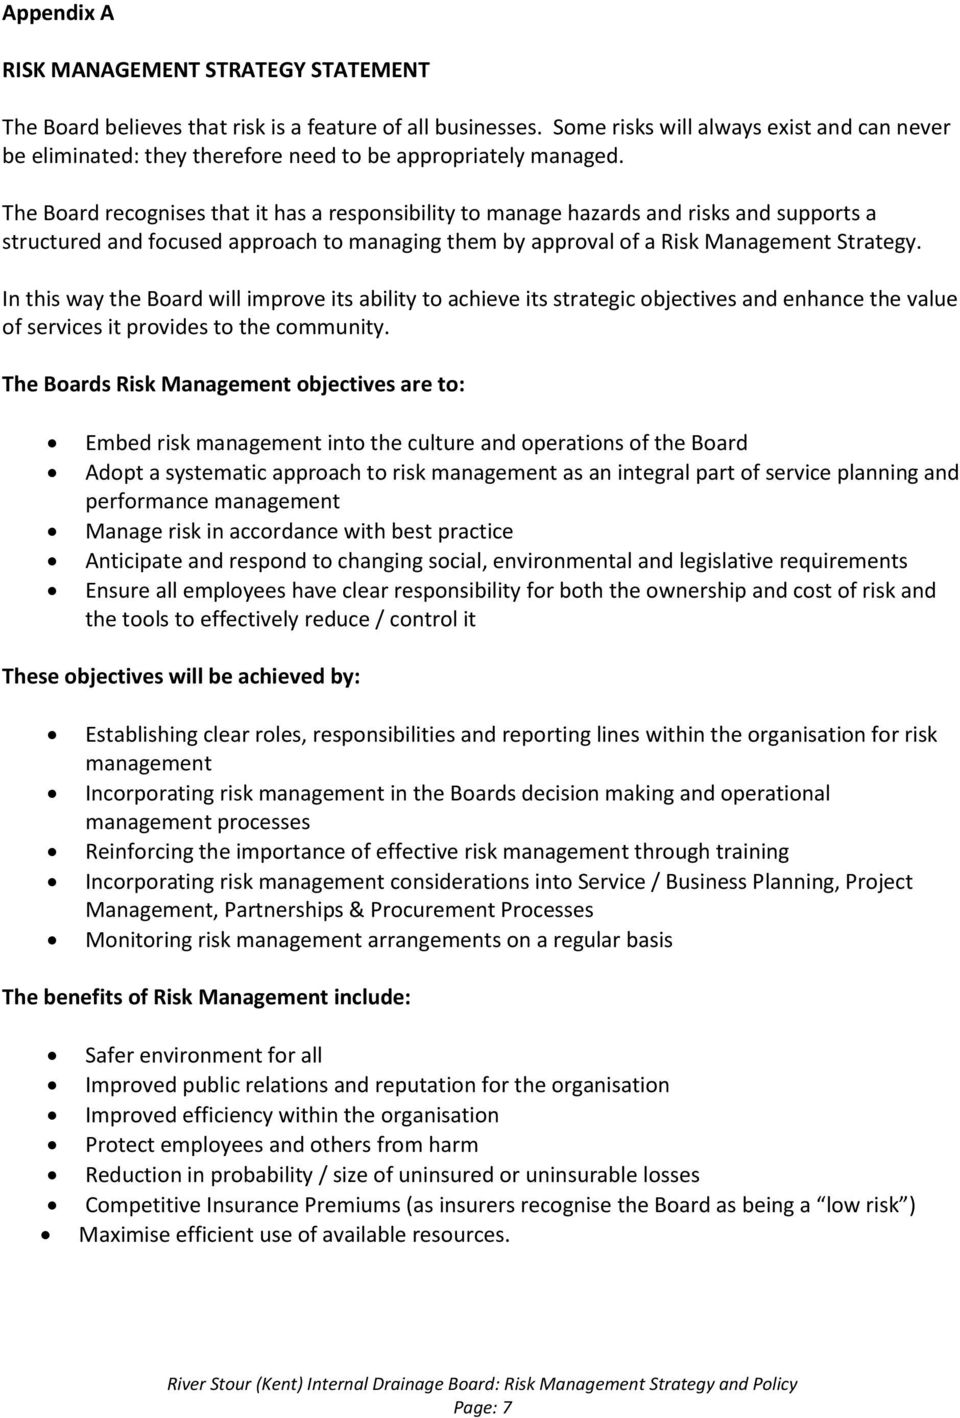 The Board recognises that it has a responsibility to manage hazards and risks and supports a structured and focused approach to managing them by approval of a Risk Management Strategy.